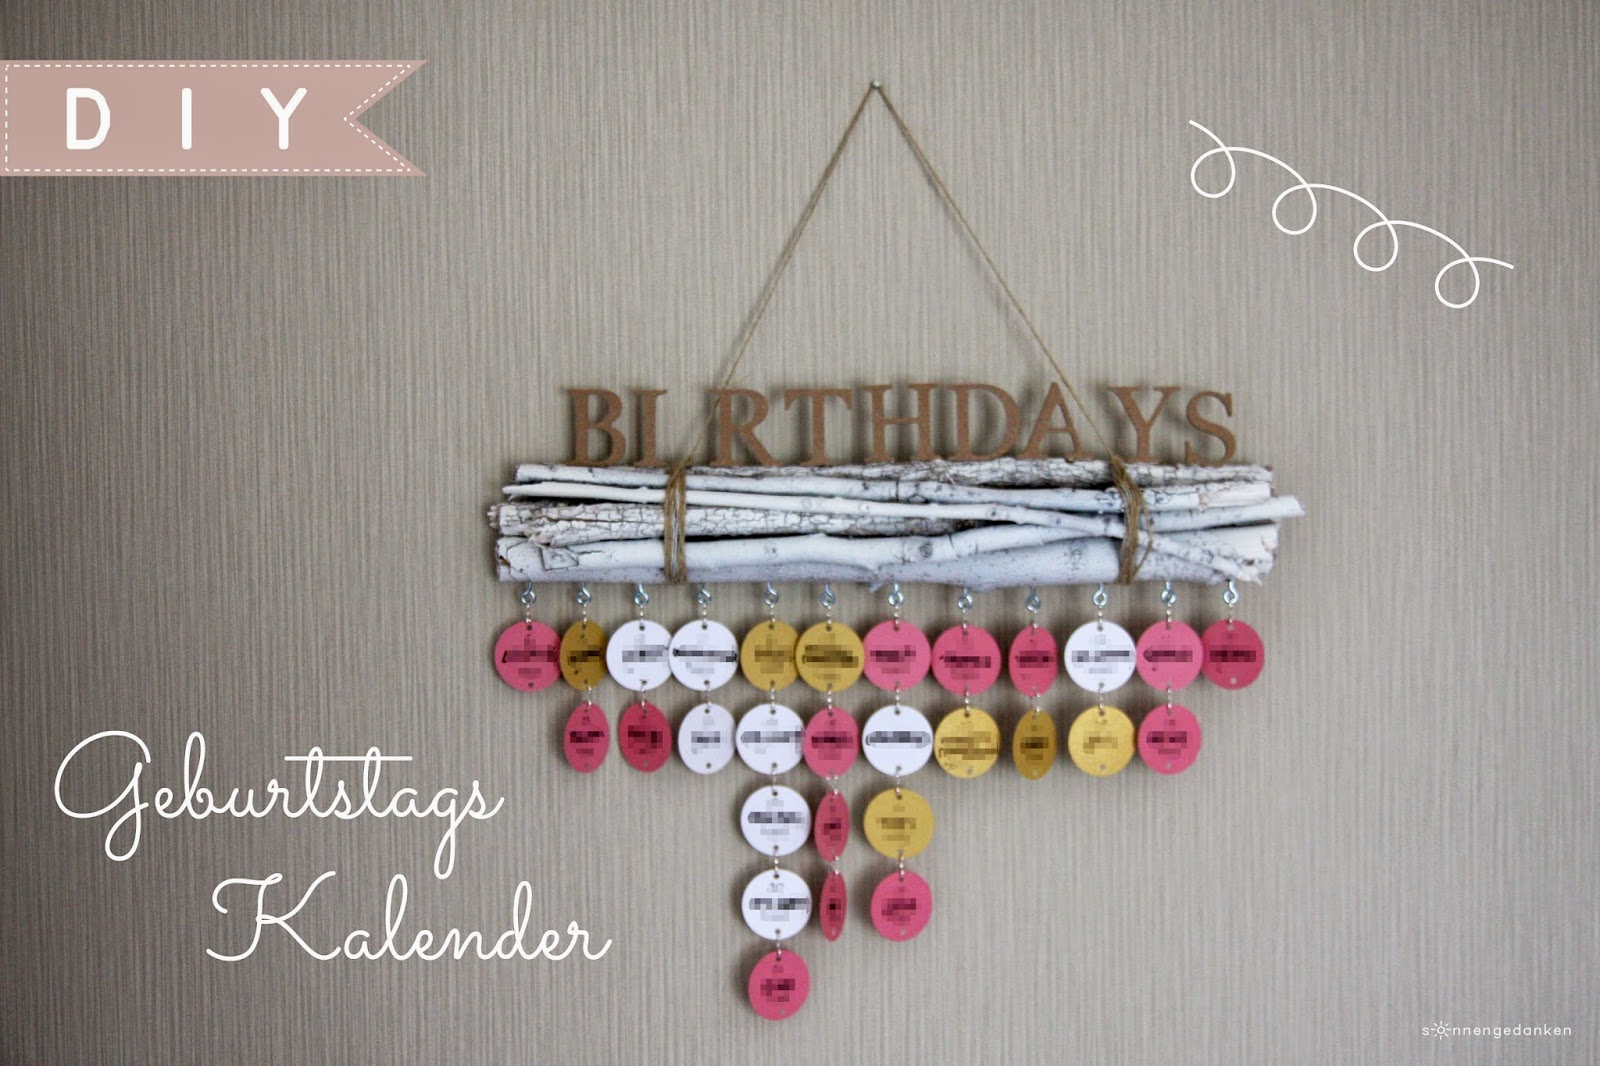 Sonnengedanken diy geburtstagskalender for Fotos pinterest